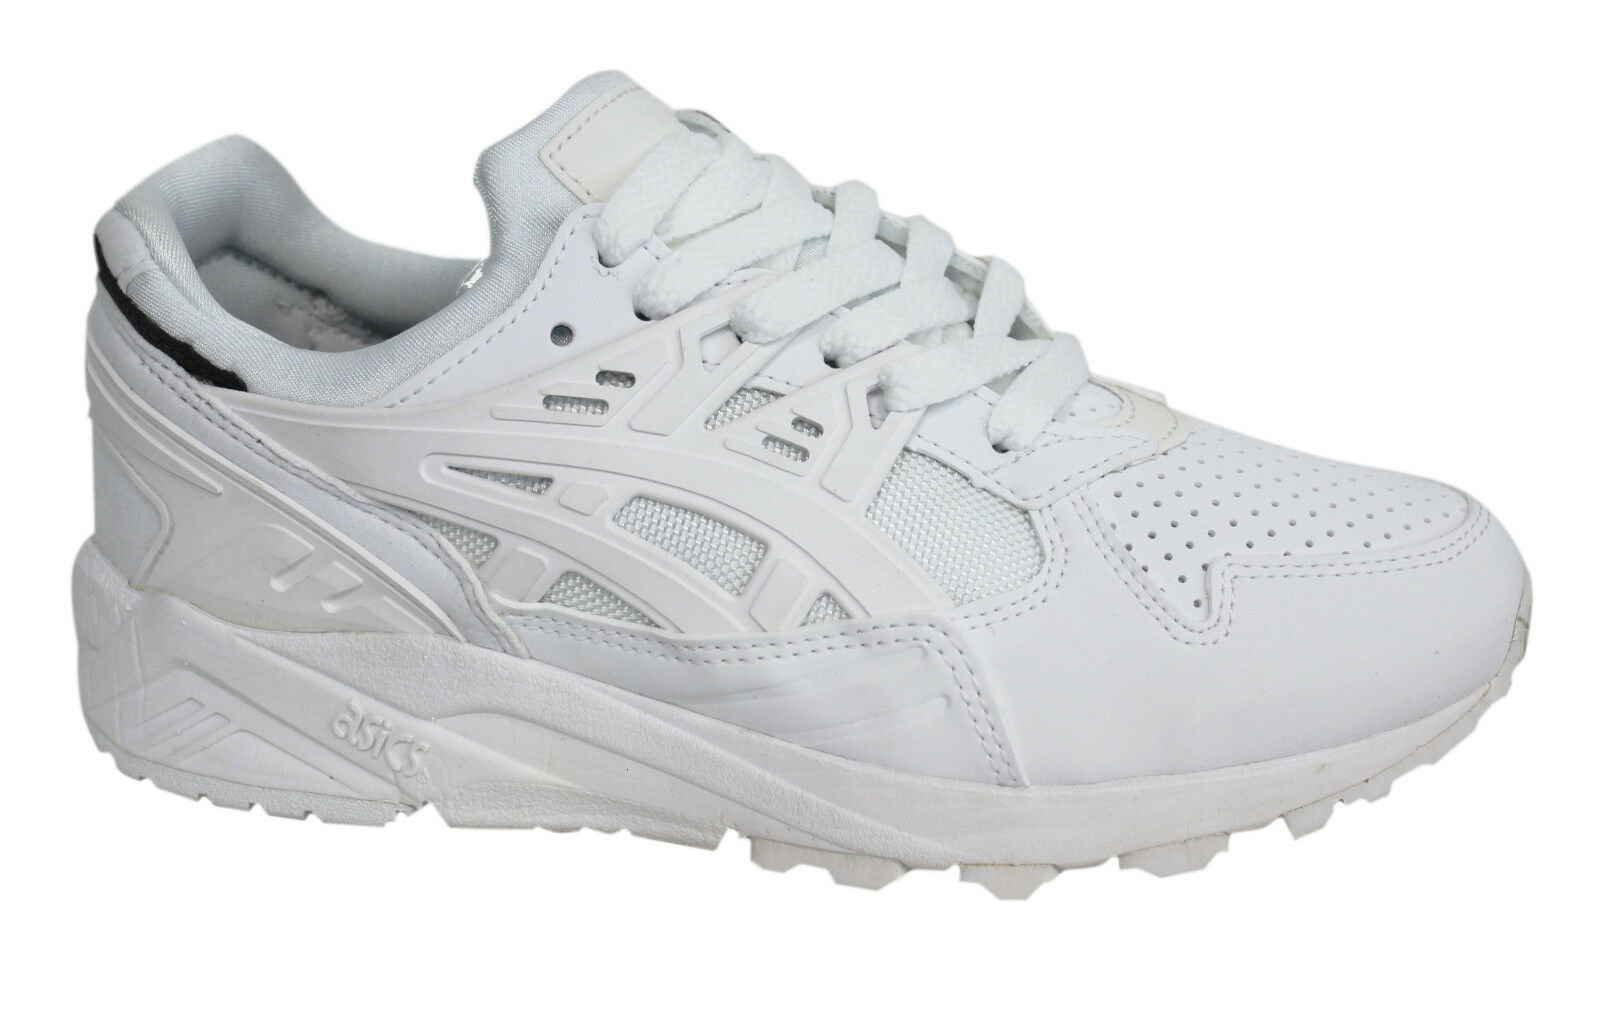 Details about Asics Gel Kayano Evo White Lace Up Men Synthetic Leather Trainers H5BOY 0101 D38